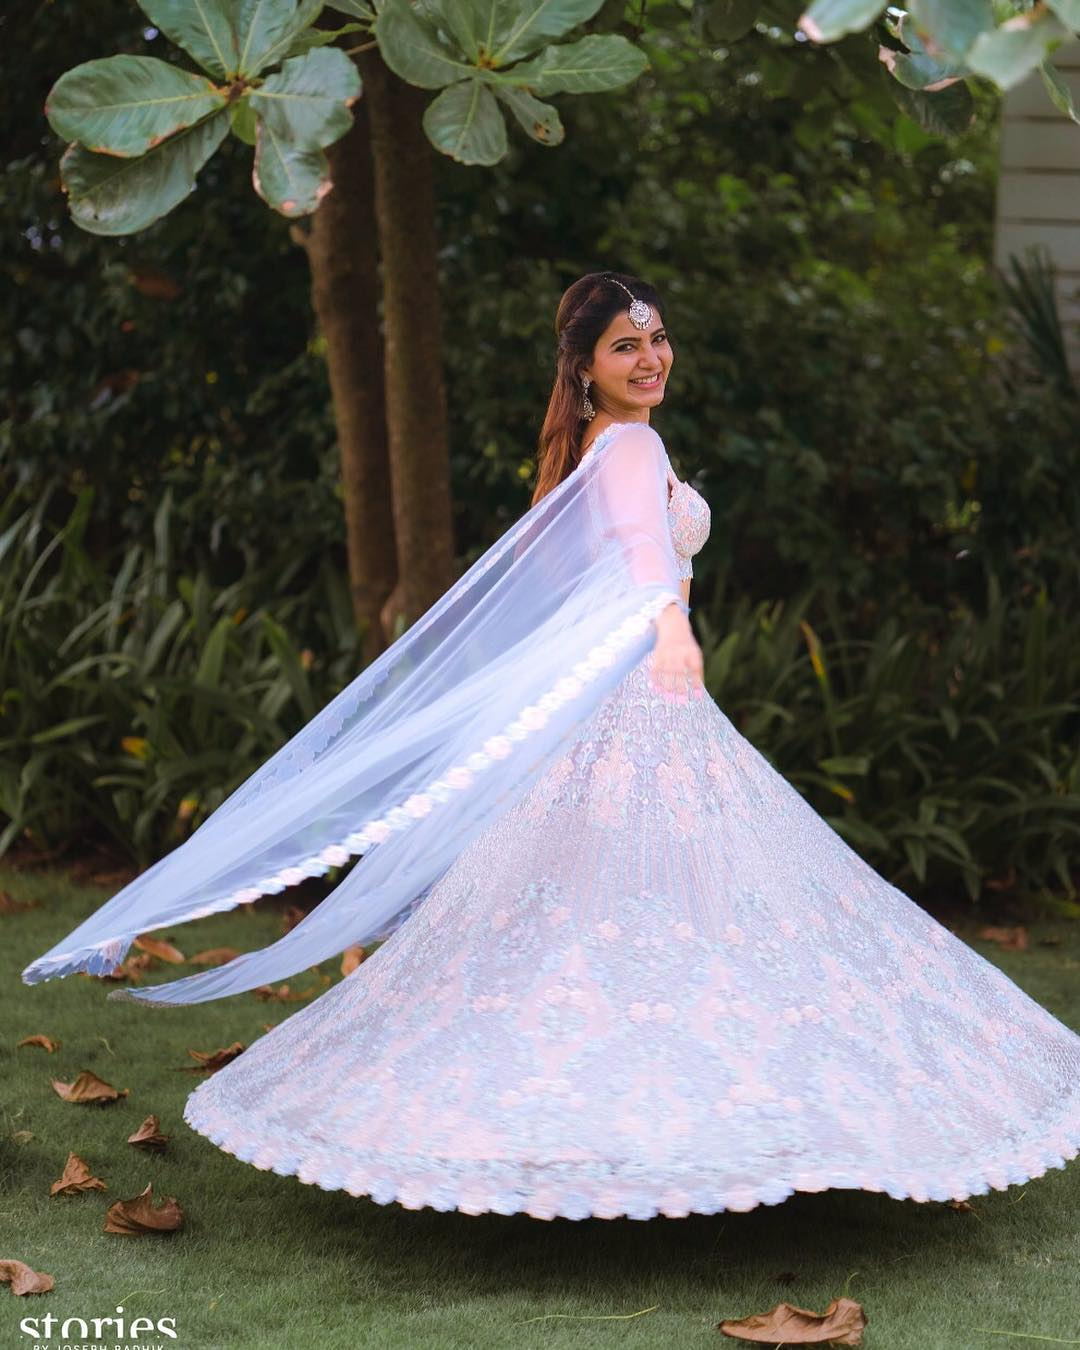 Samantha & Naga Chaitanya Wedding Marriage Dress Outfits